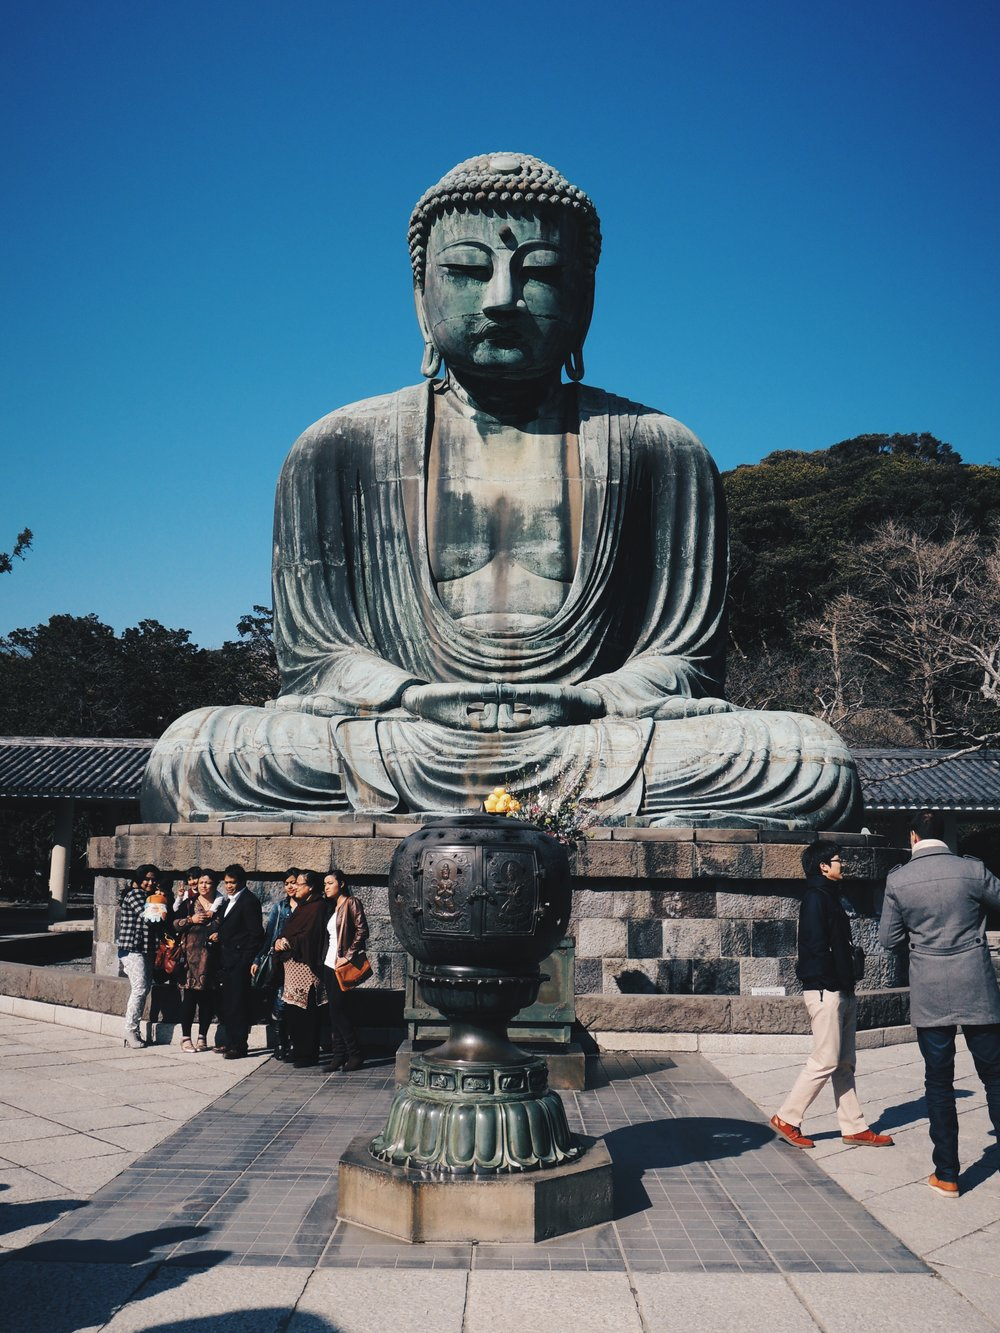 The second largest Buddha statue in Japan